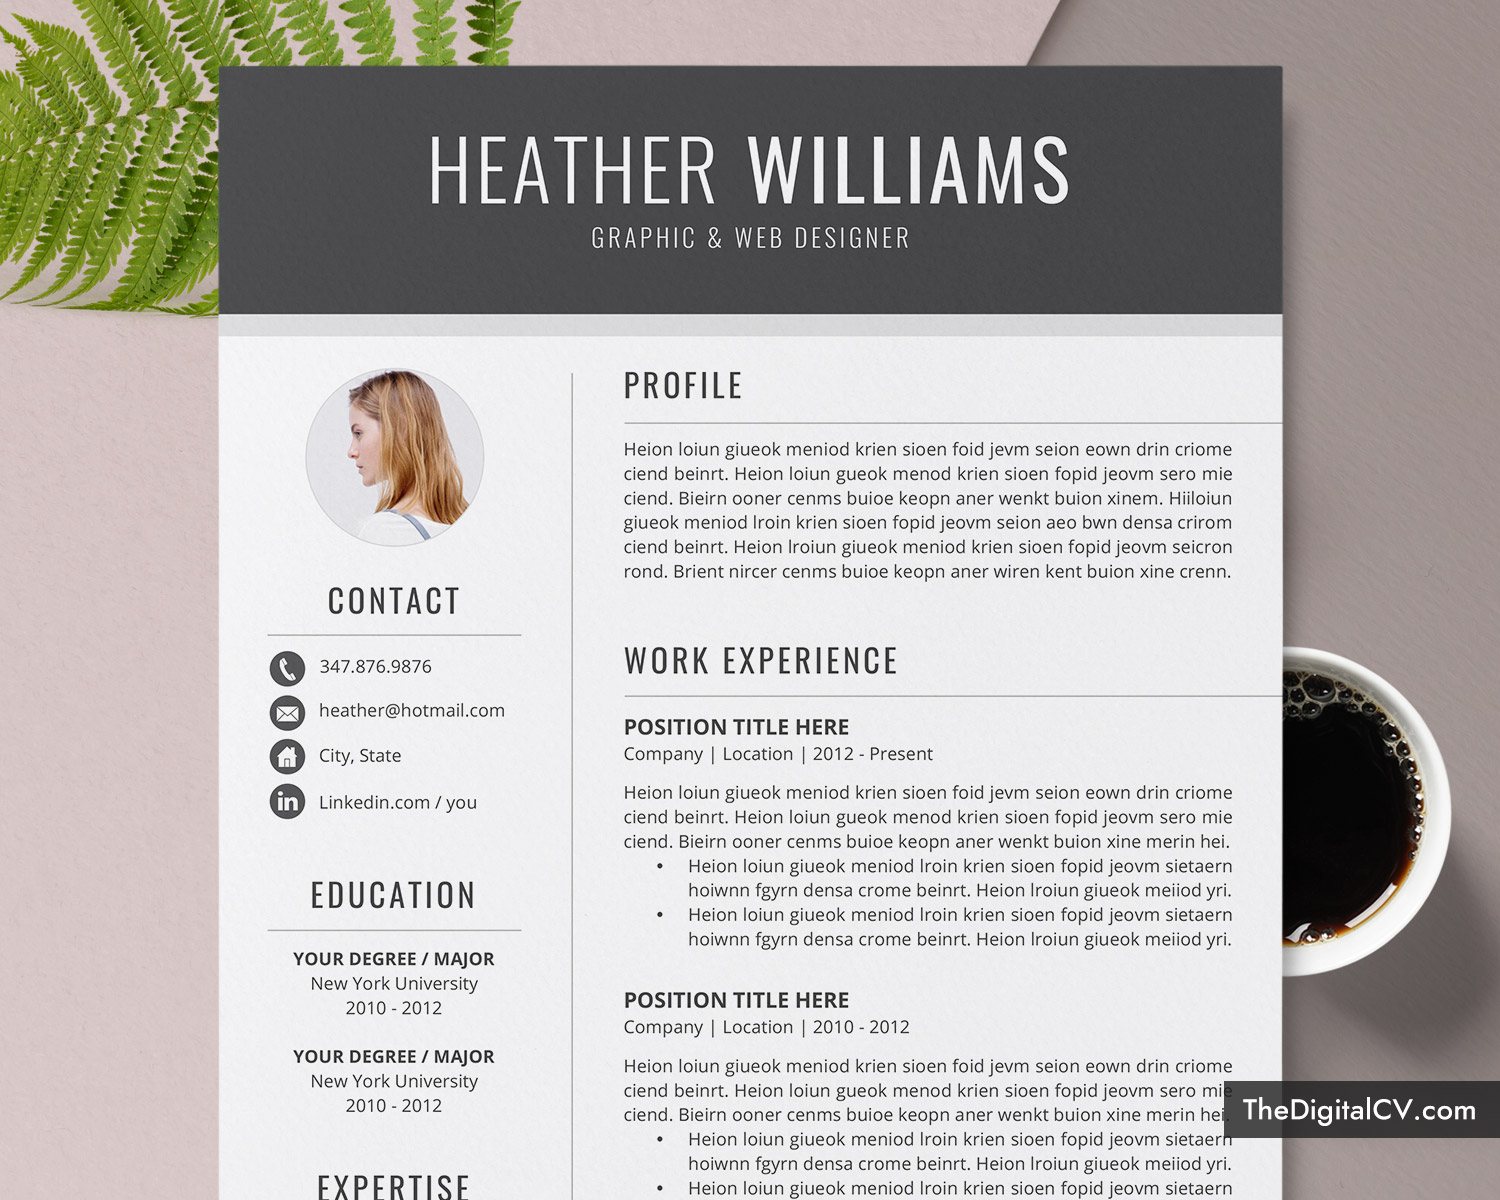 Best Resume Templates 2020.Thedigitalcv Com 2019 2020 Job Winning Resume Cv